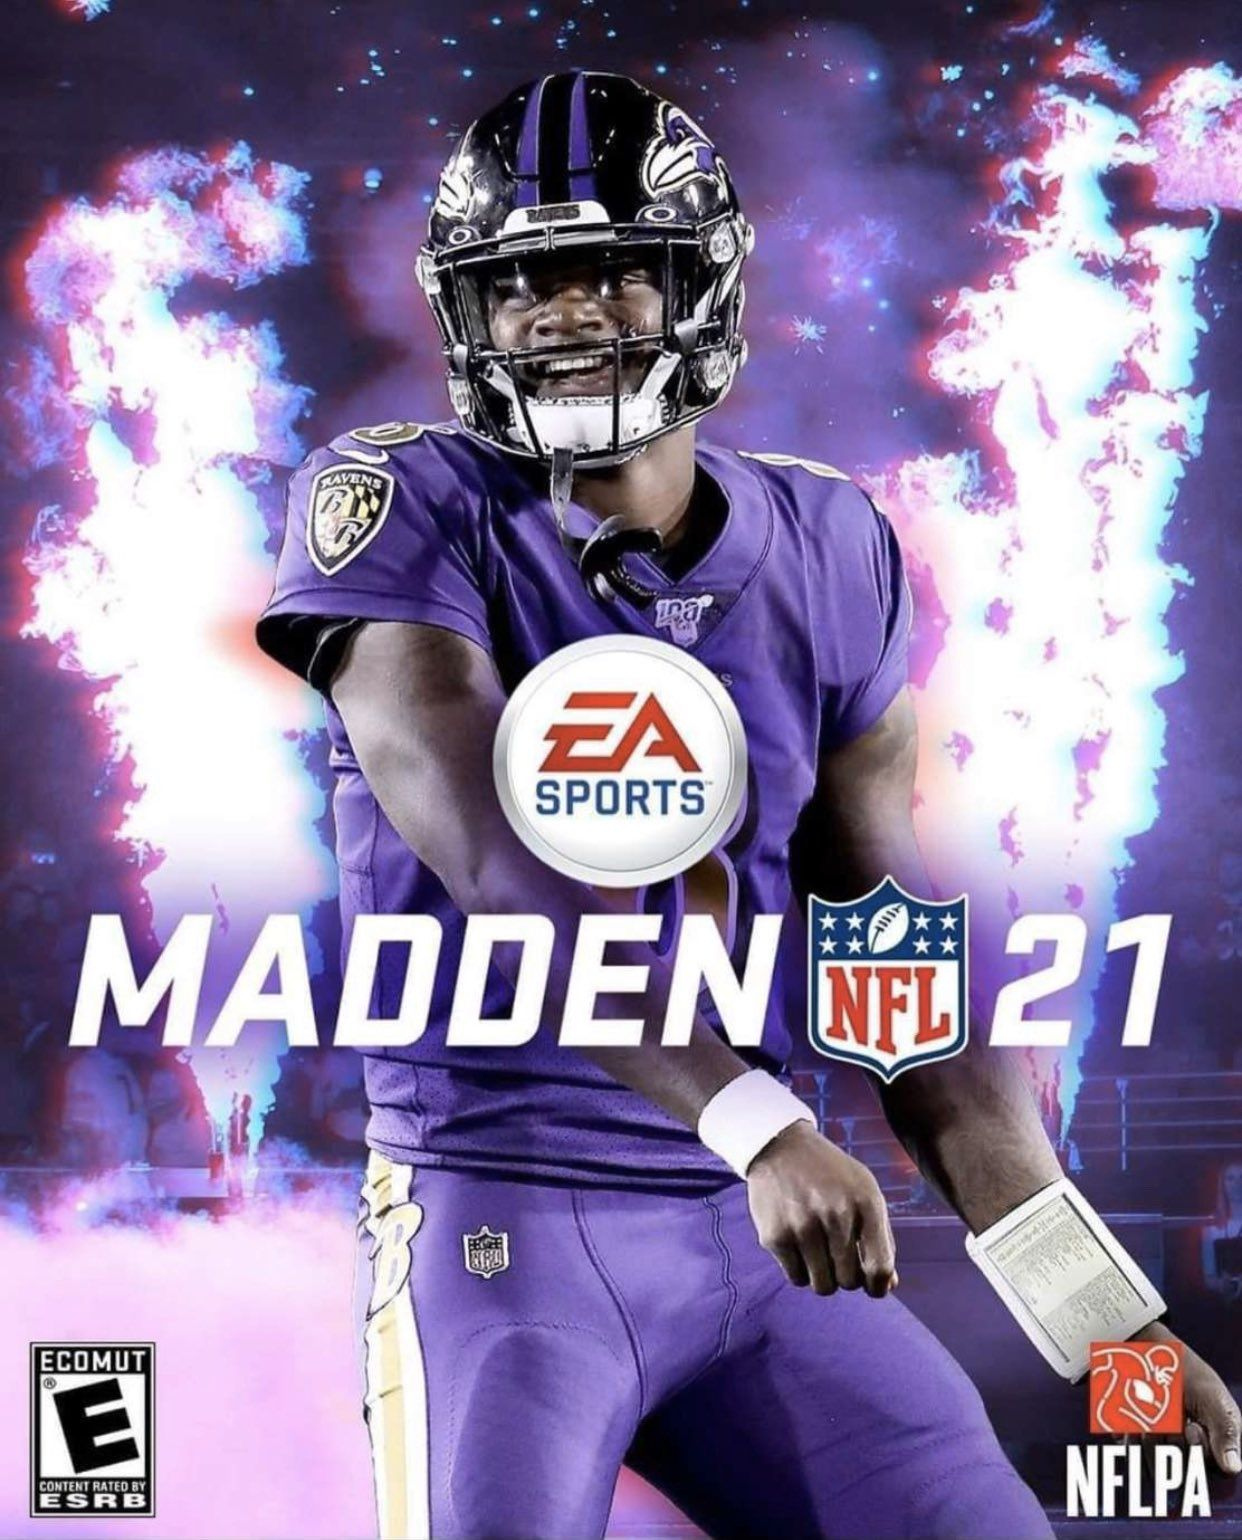 Lamar Jackson Is Madden 21 Cover Athlete And Do You Believe Cover Curse In 2020 Baltimore Ravens Football Ravens Football Nfl Football Art